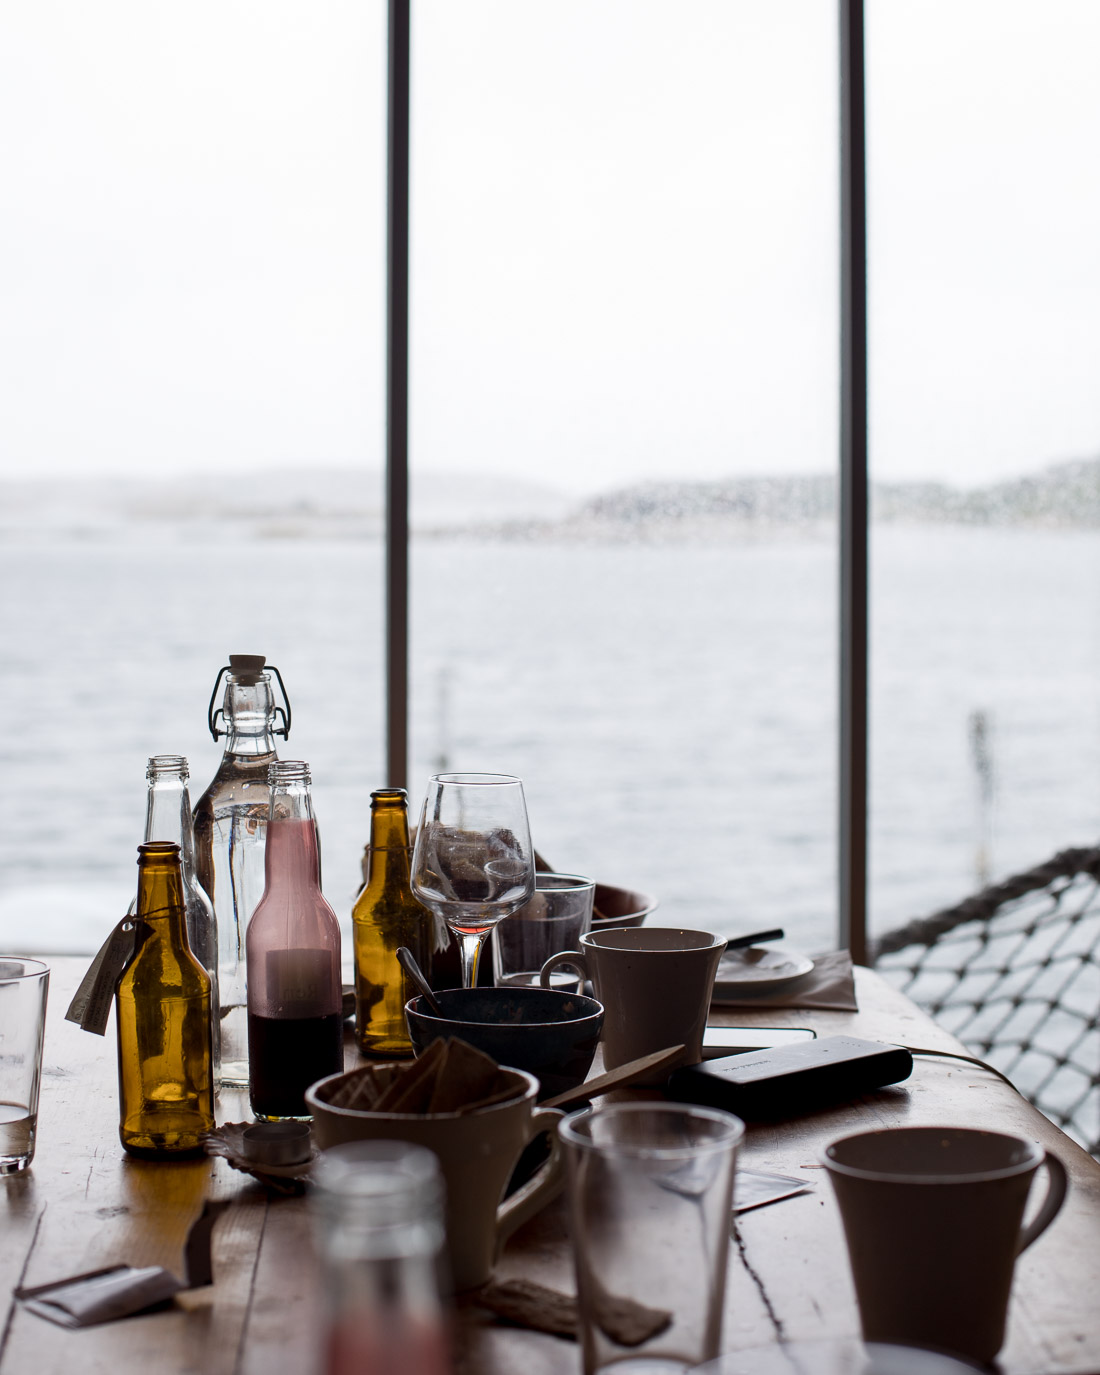 West Sweden: Food Stories | Seaweed Foraging with Catxalot